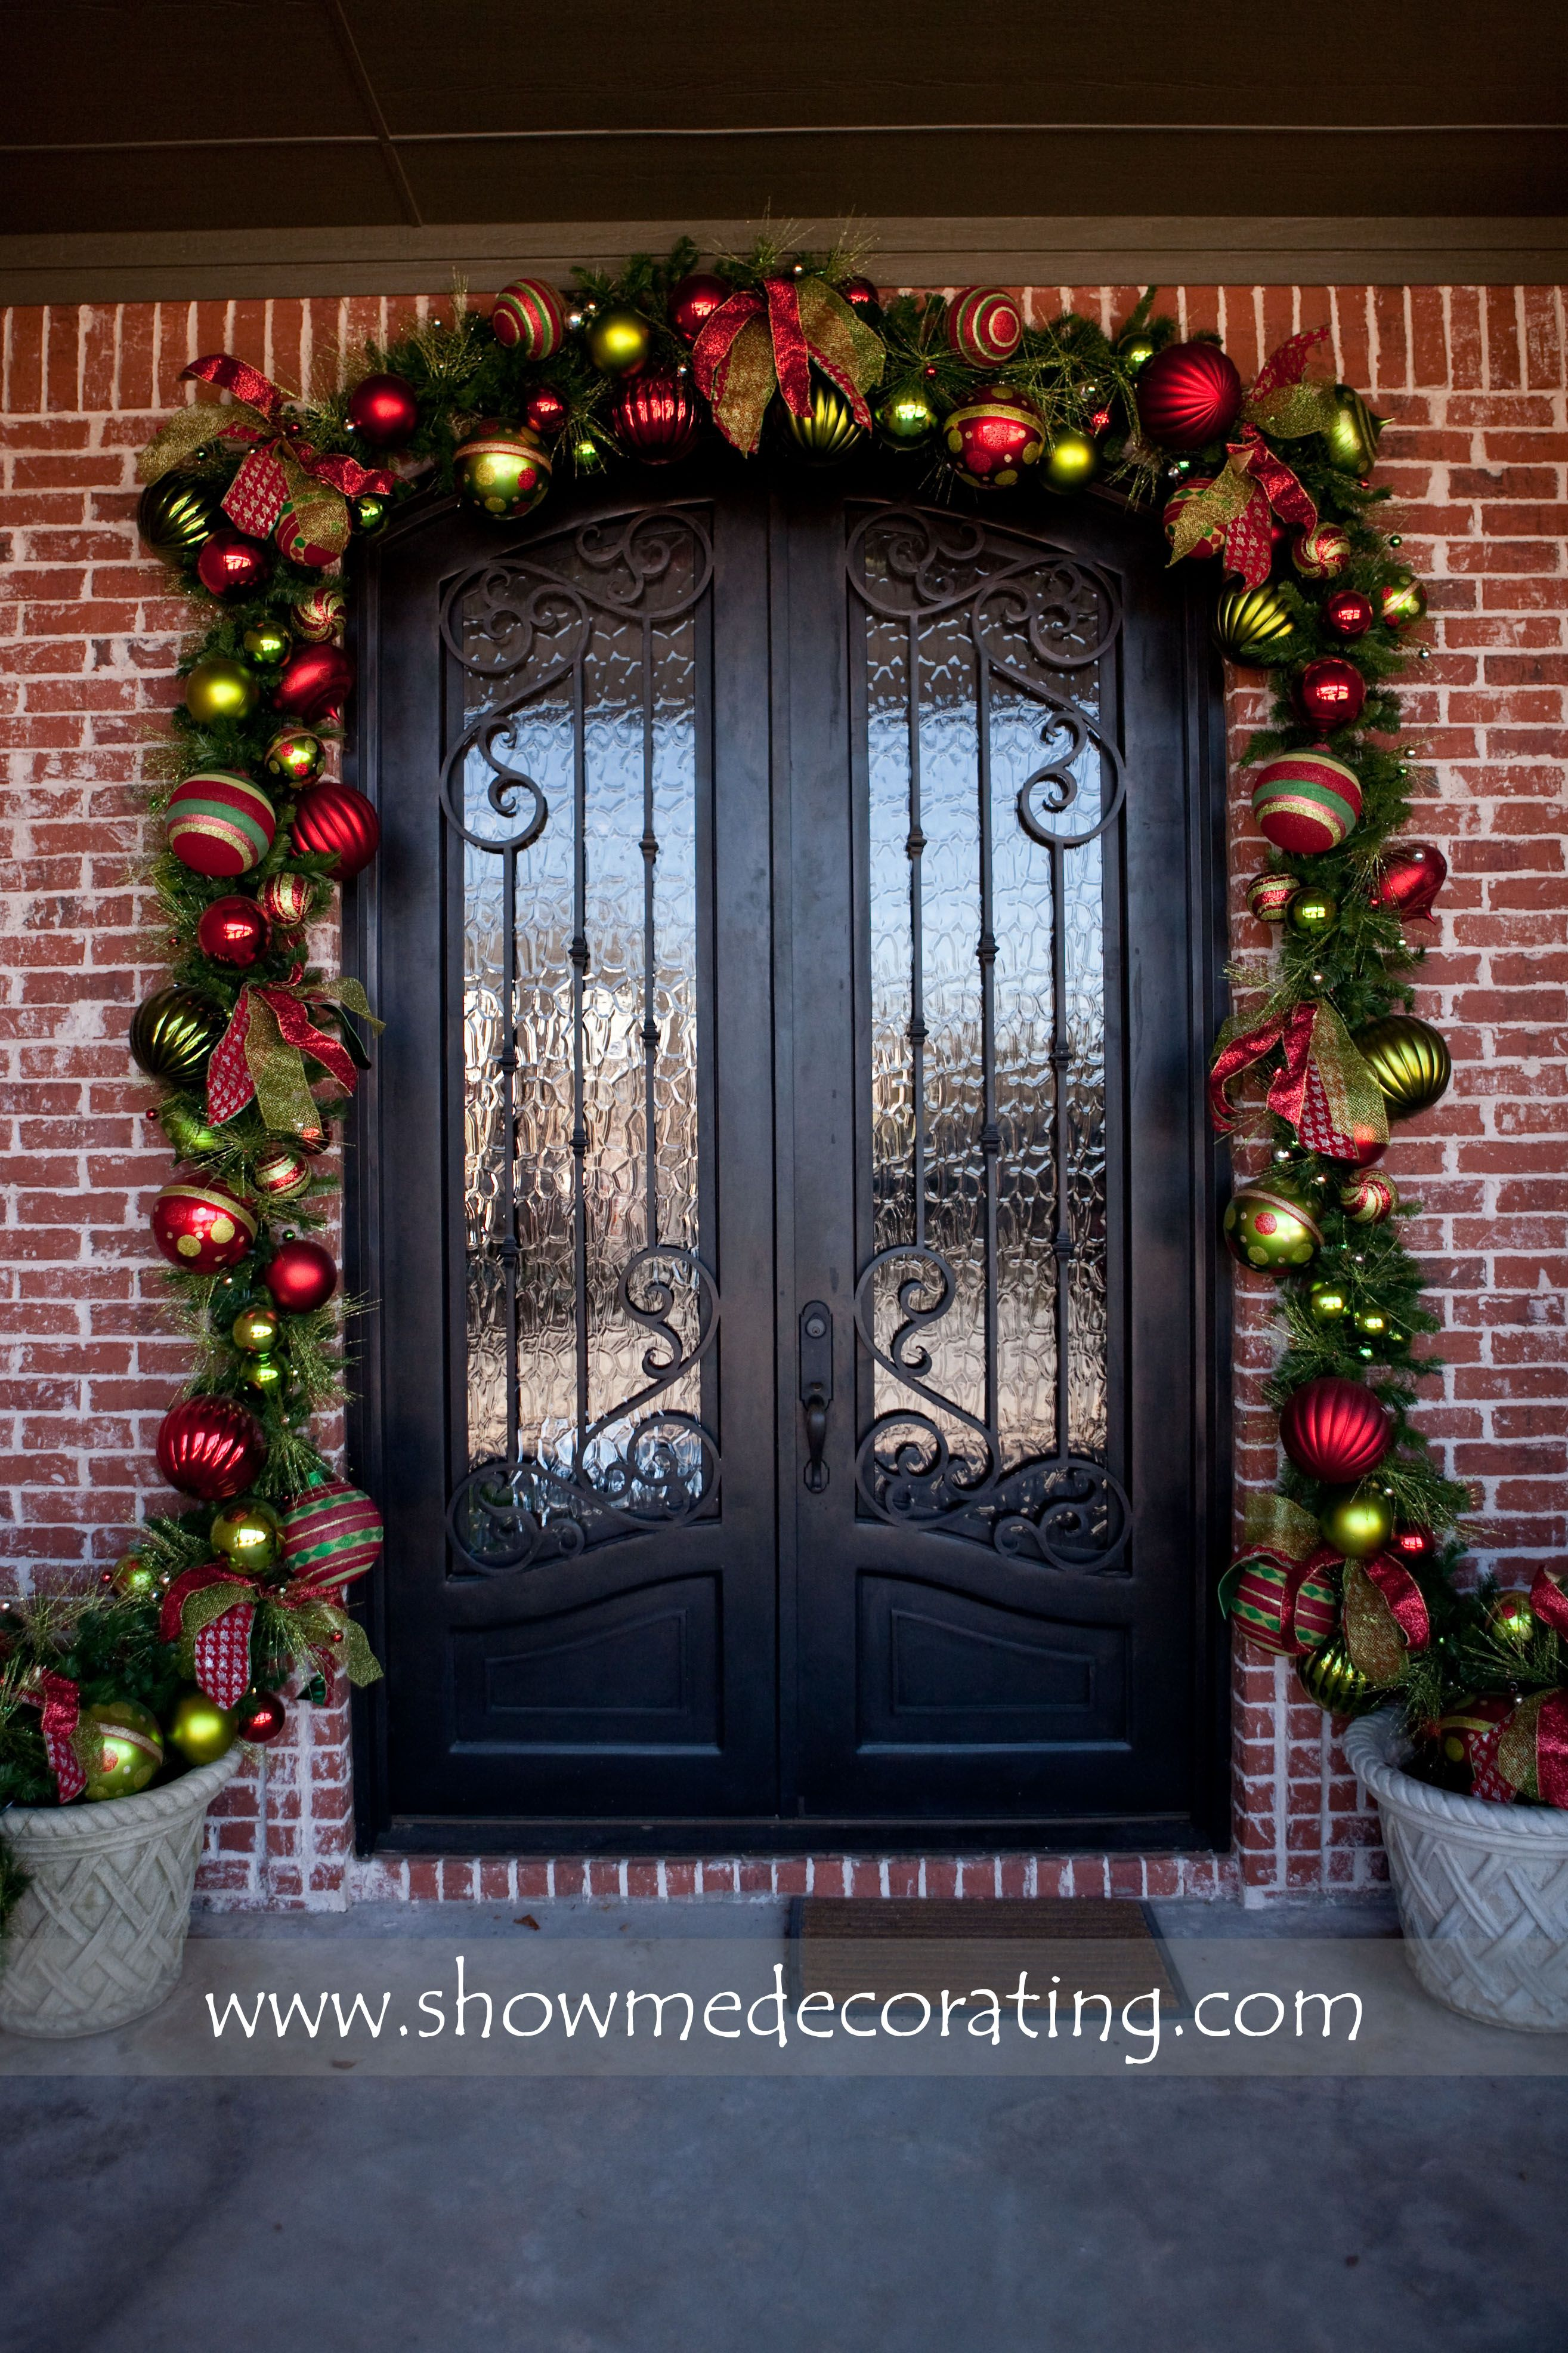 Show Stopping Christmas Garland Over Your Doorway To Greet